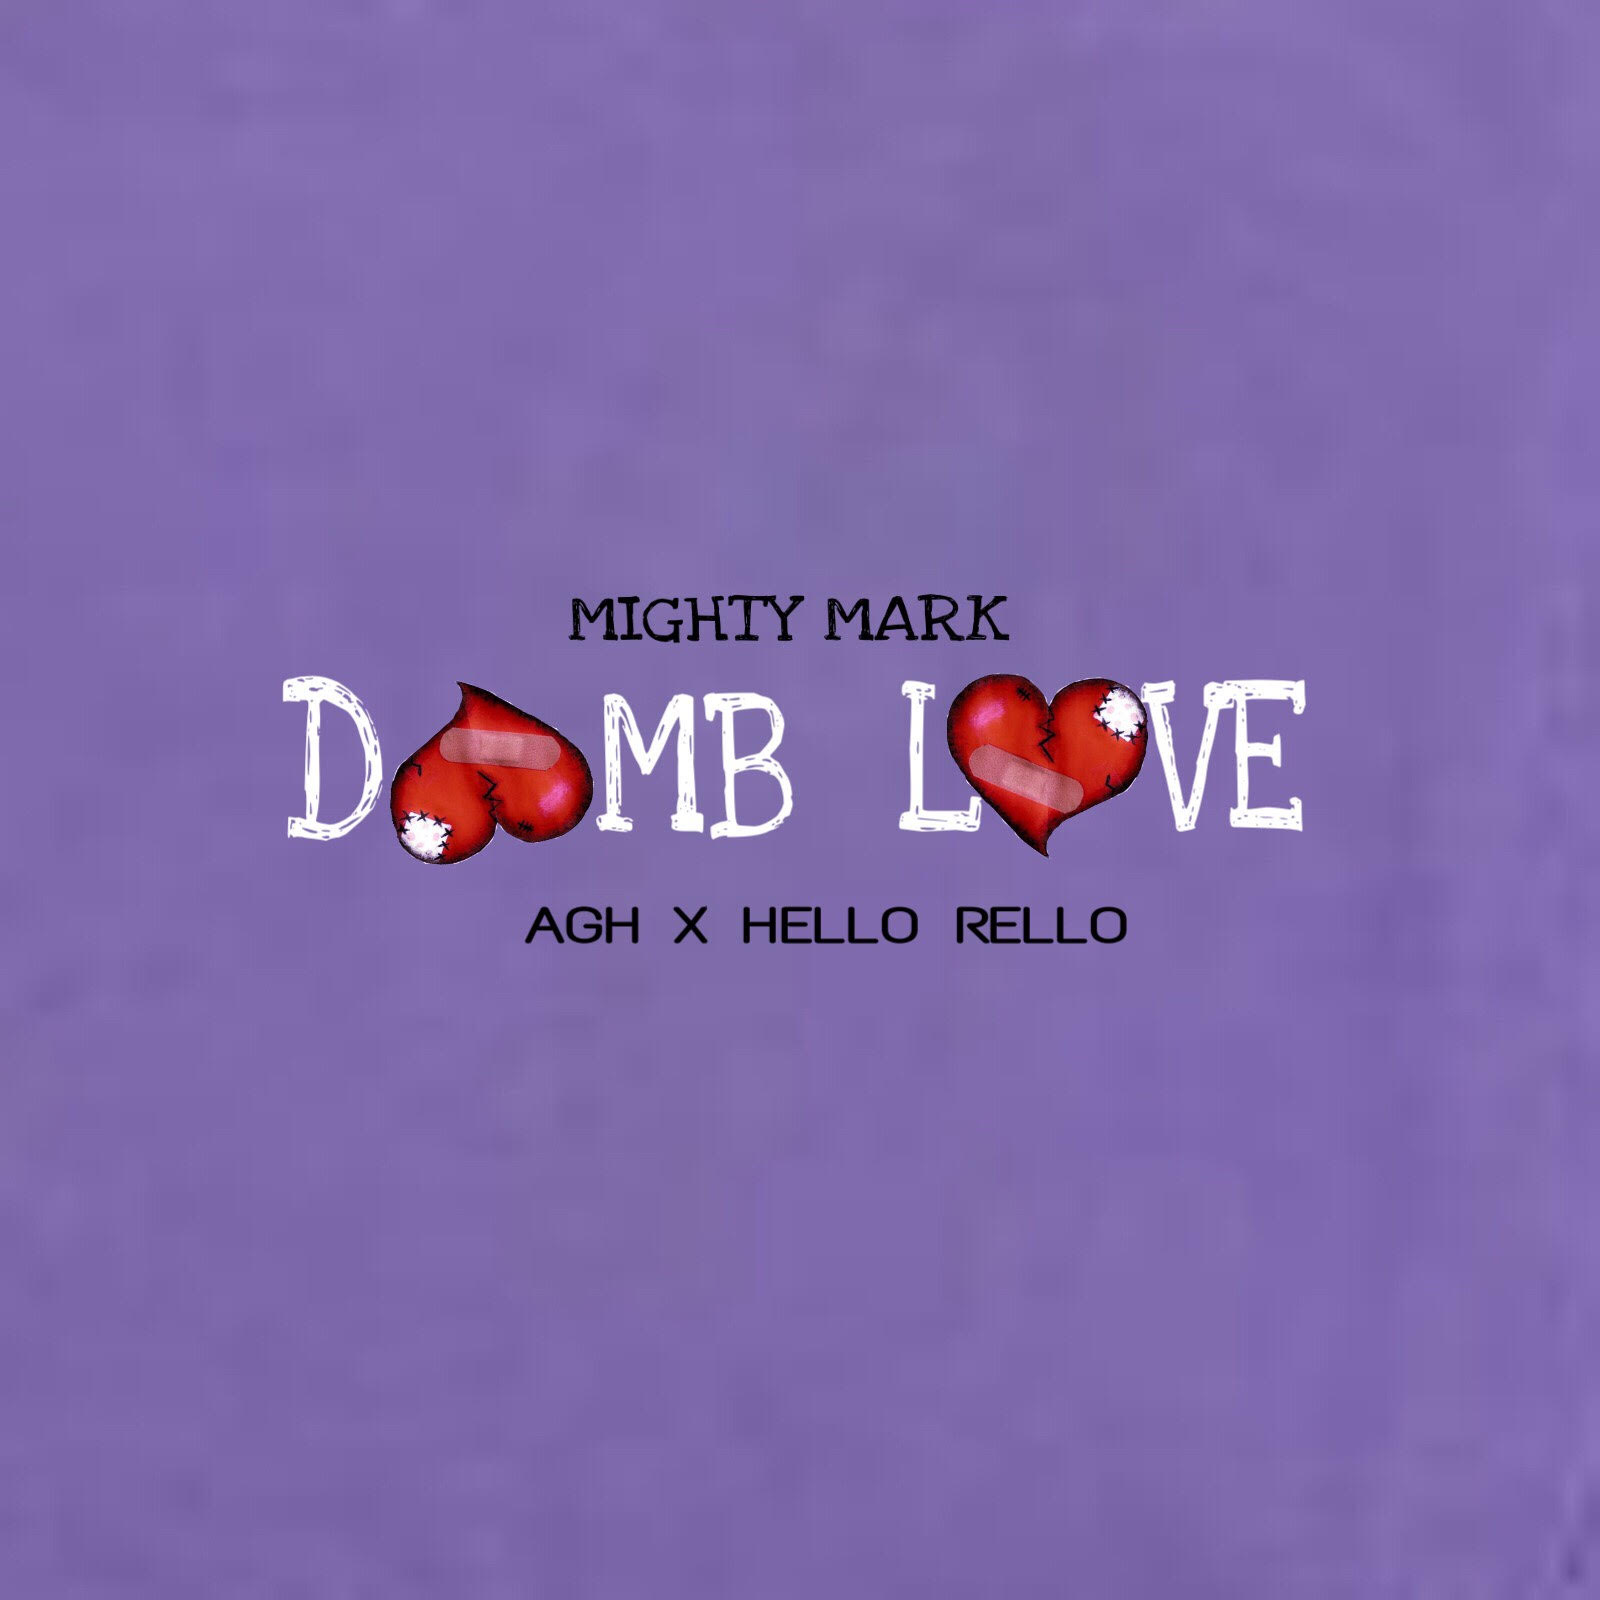 AGH X Mighty Mark X Hello Rello -  Dumb Love  (2017)